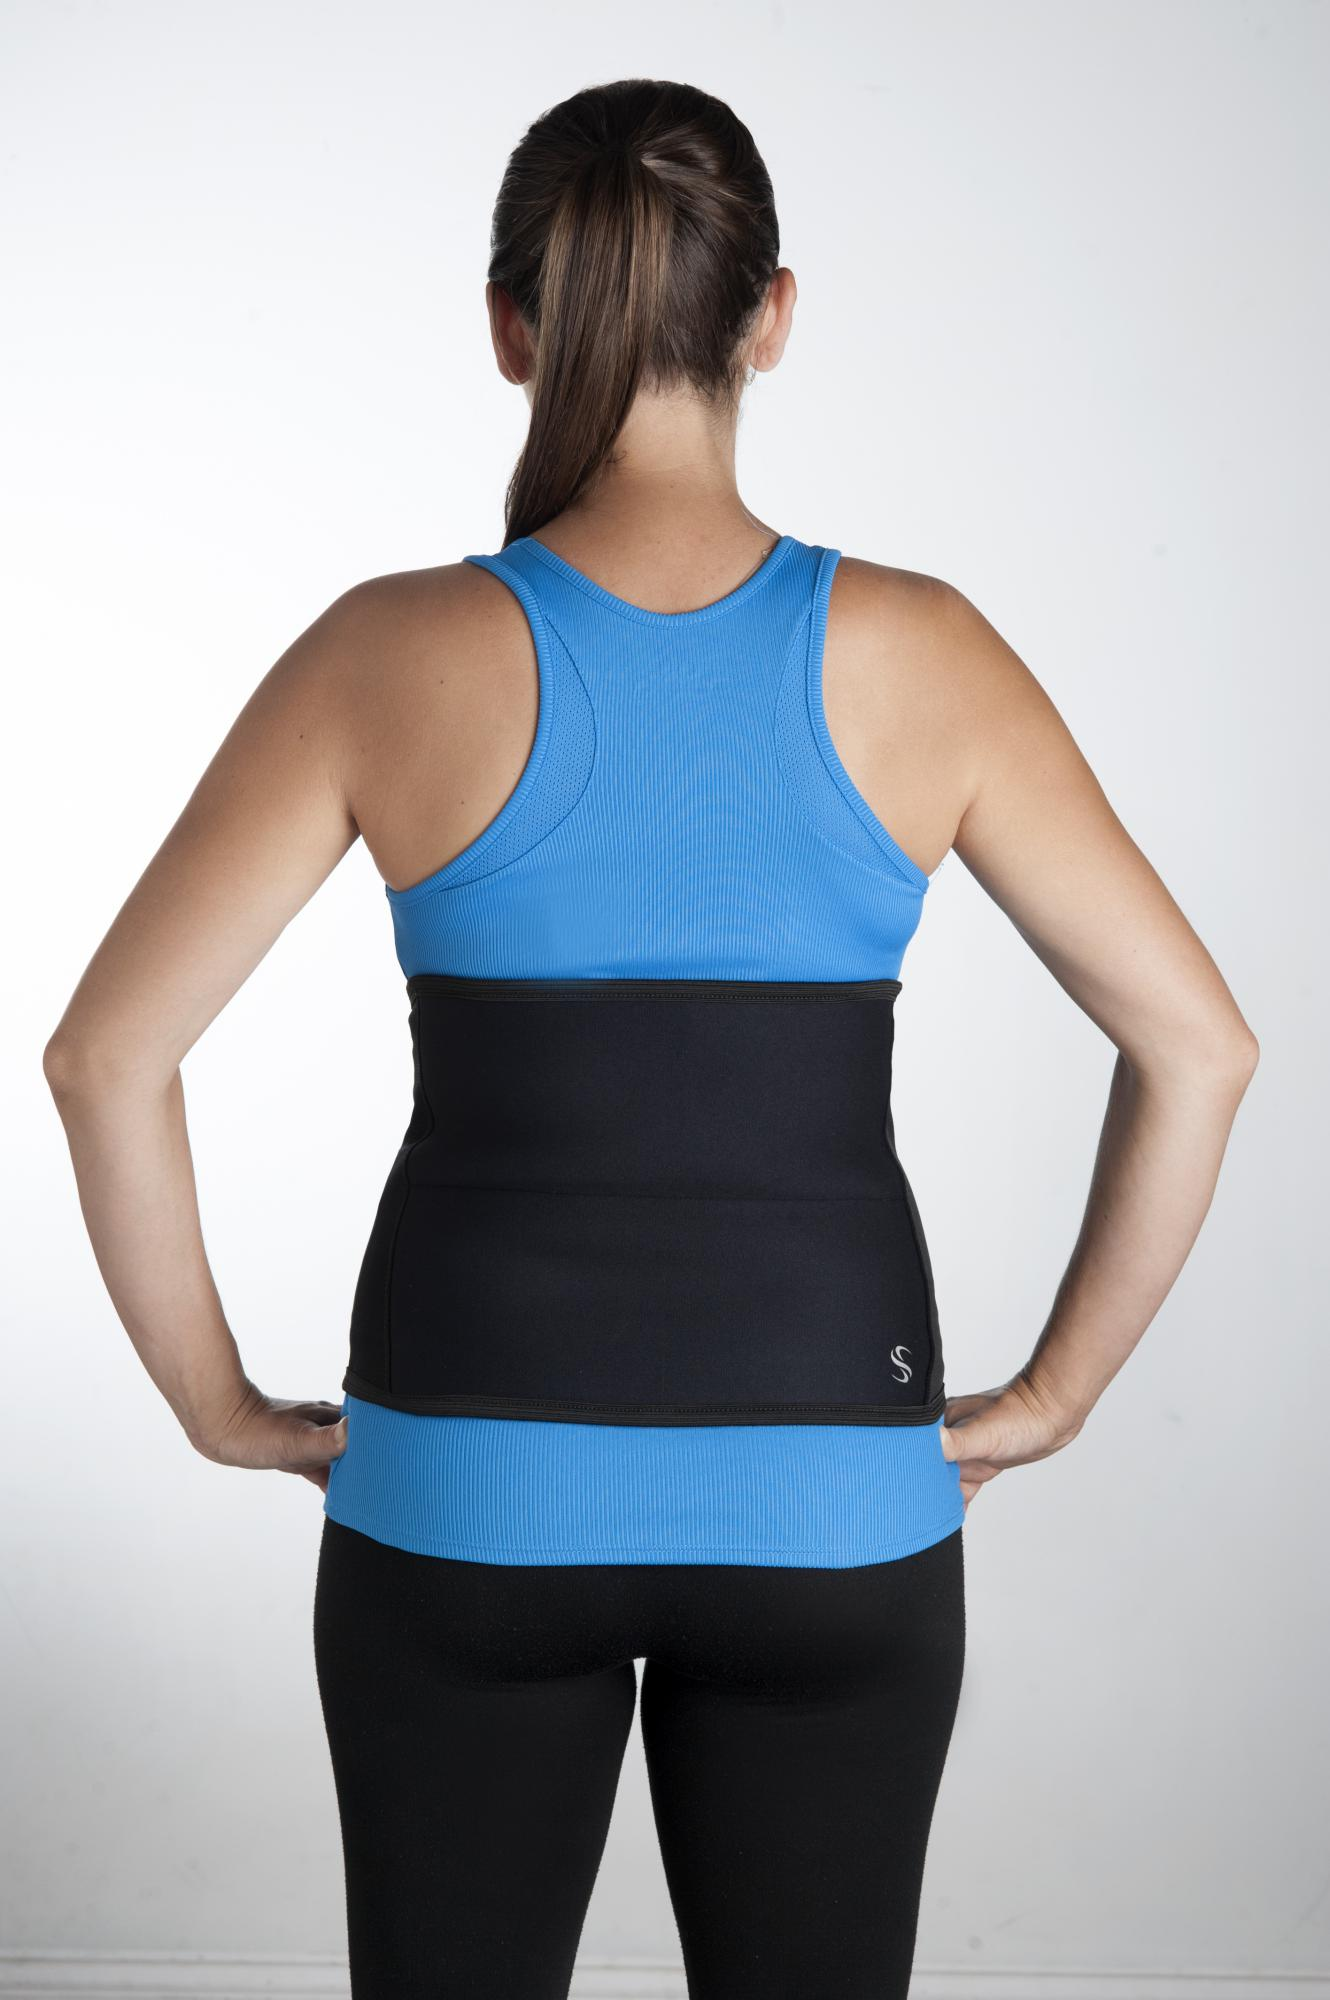 spand-ice-maternity-relief-wrap-back.jpg